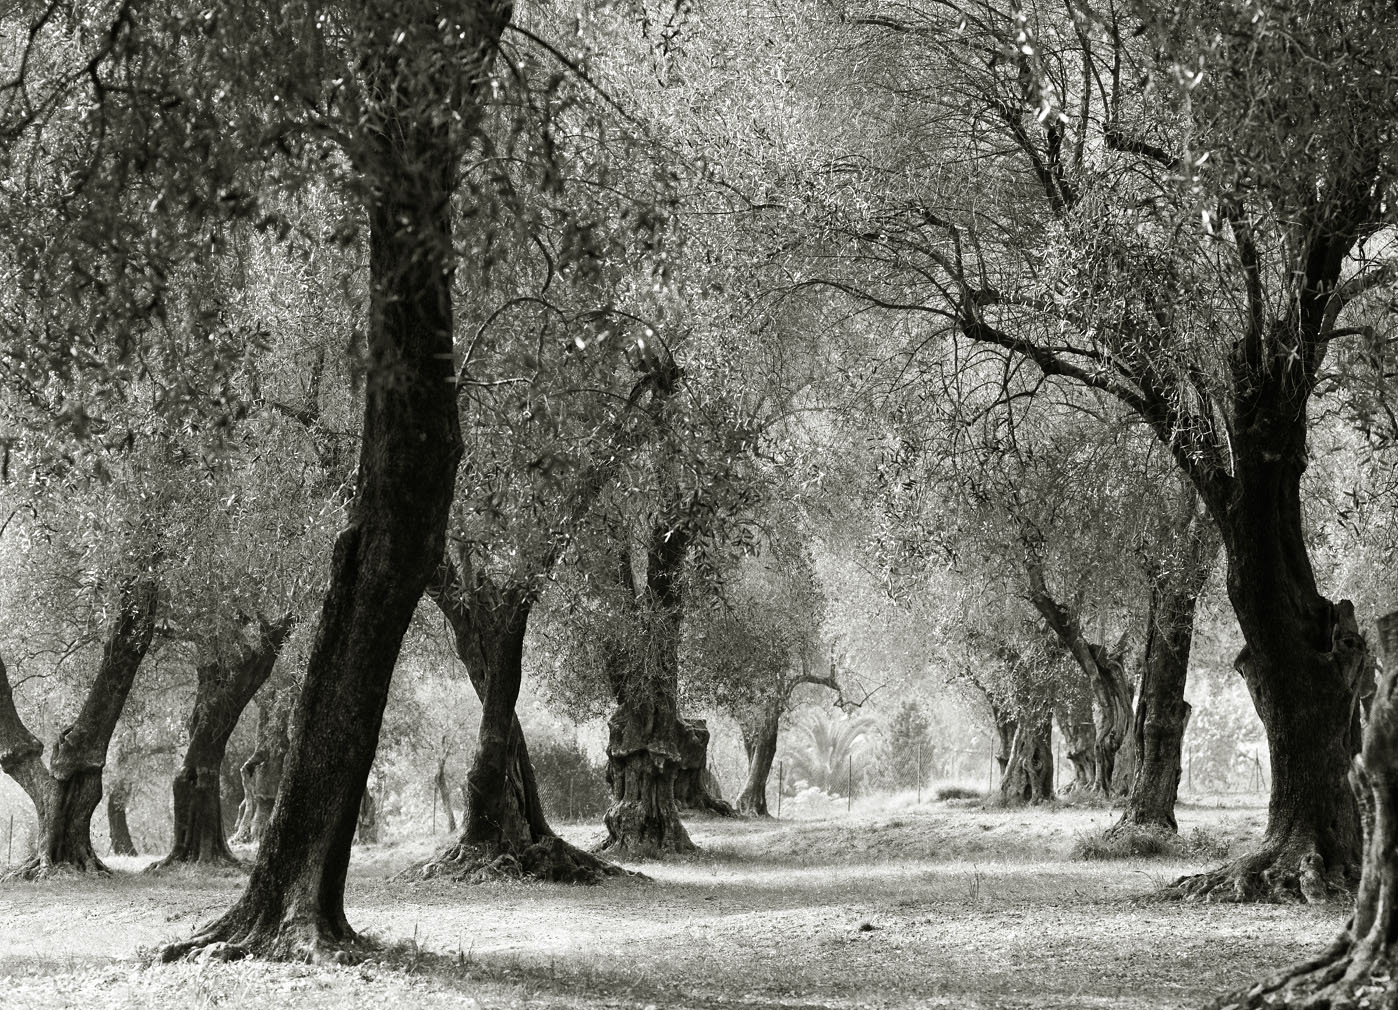 Olive Grove #2 - Menton, France 2003